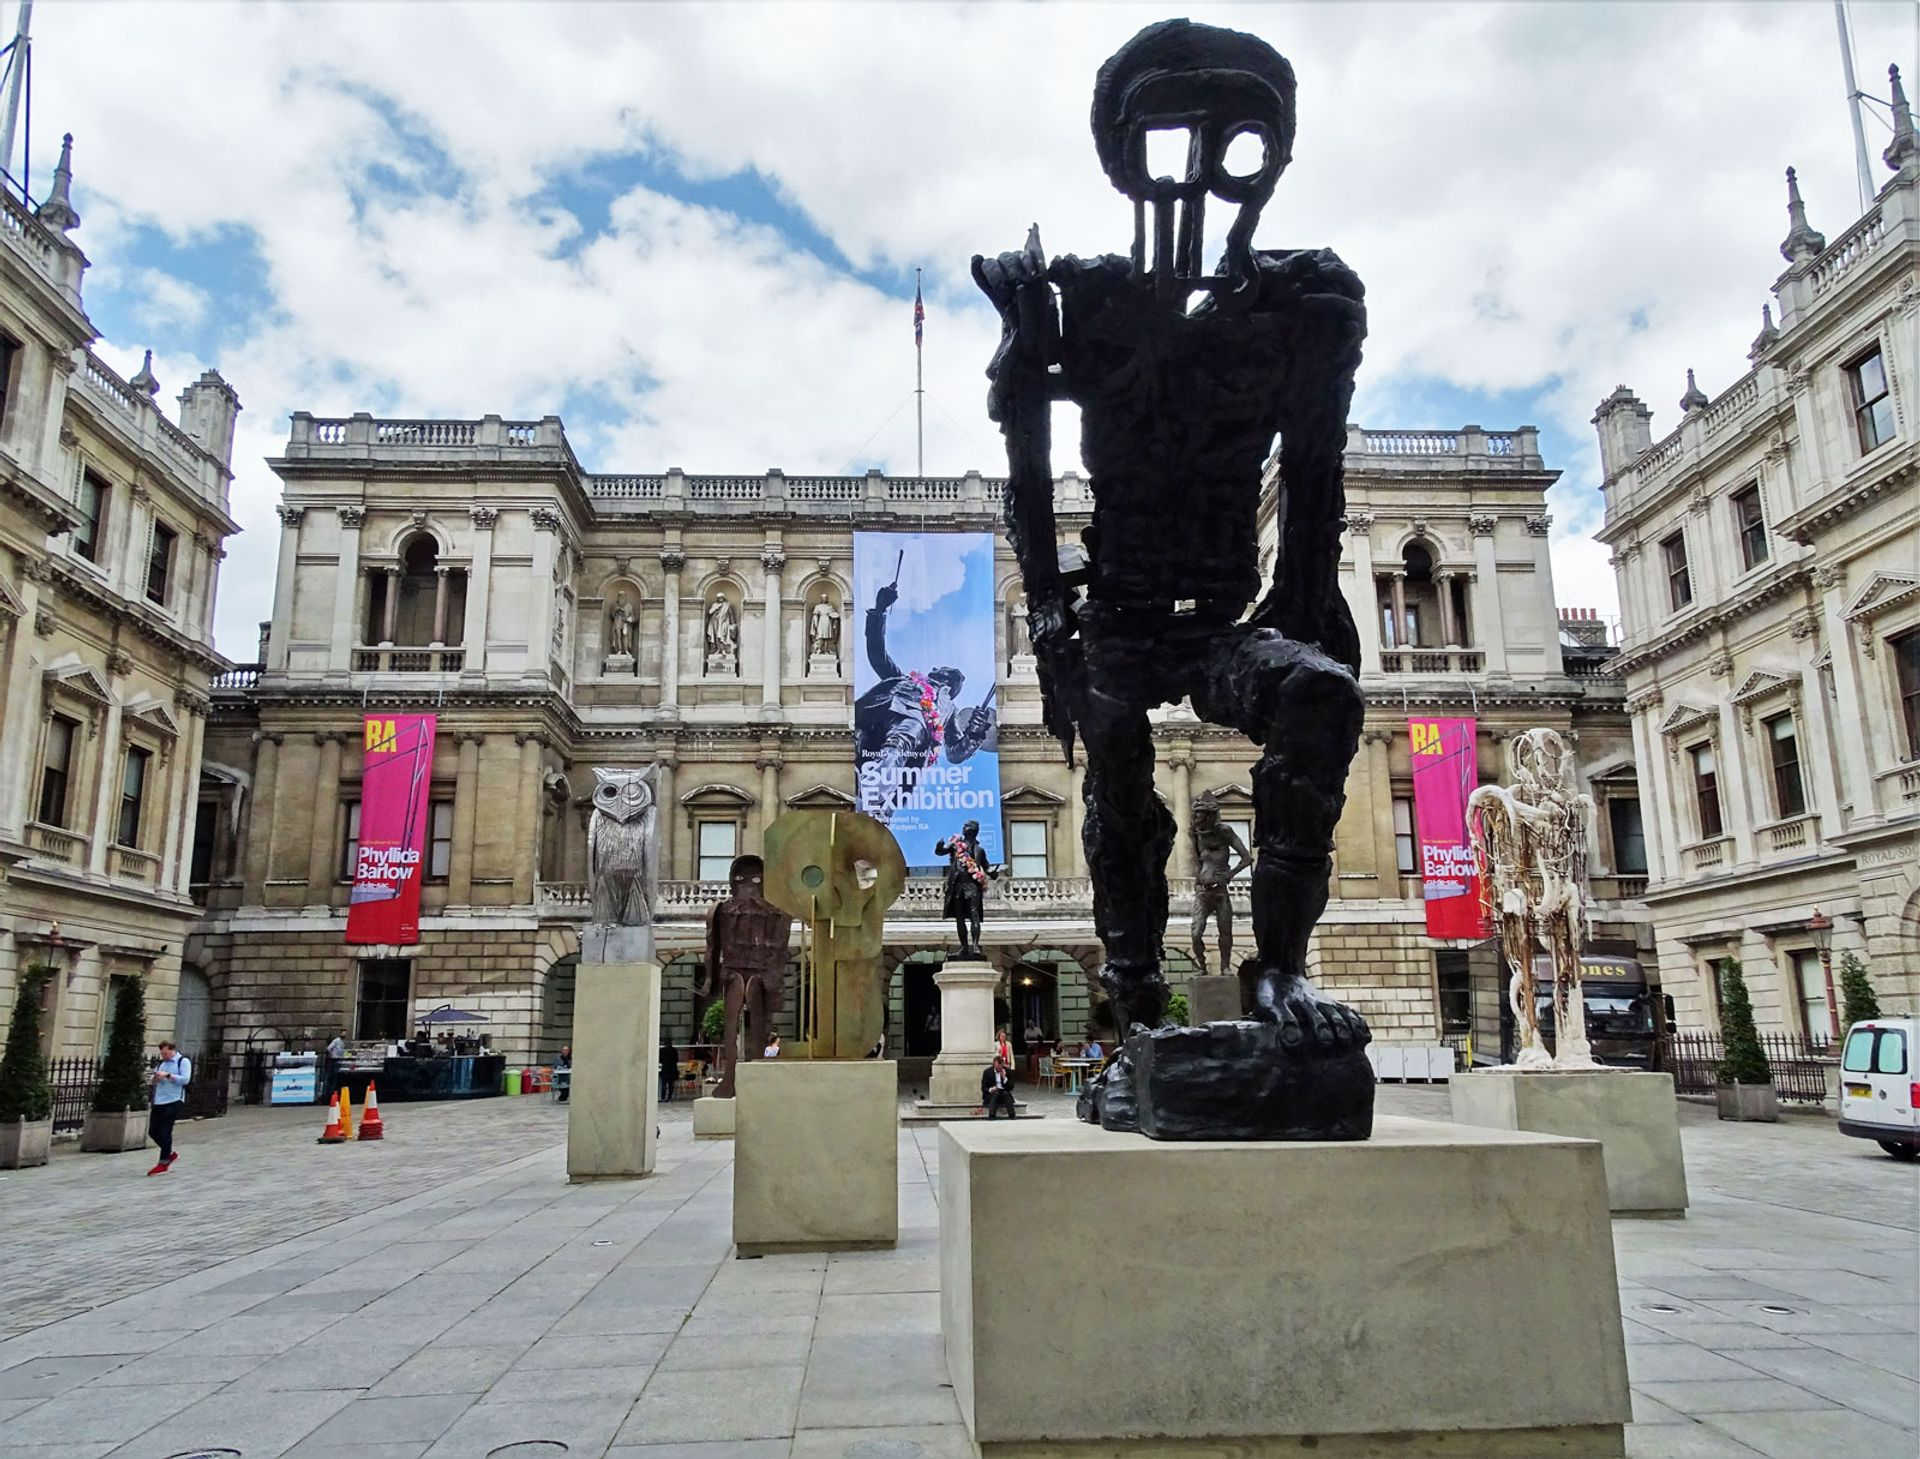 Works shown as part of the Summer Exhibition last year at the The Royal Academy of Arts in London © Neil Theasby